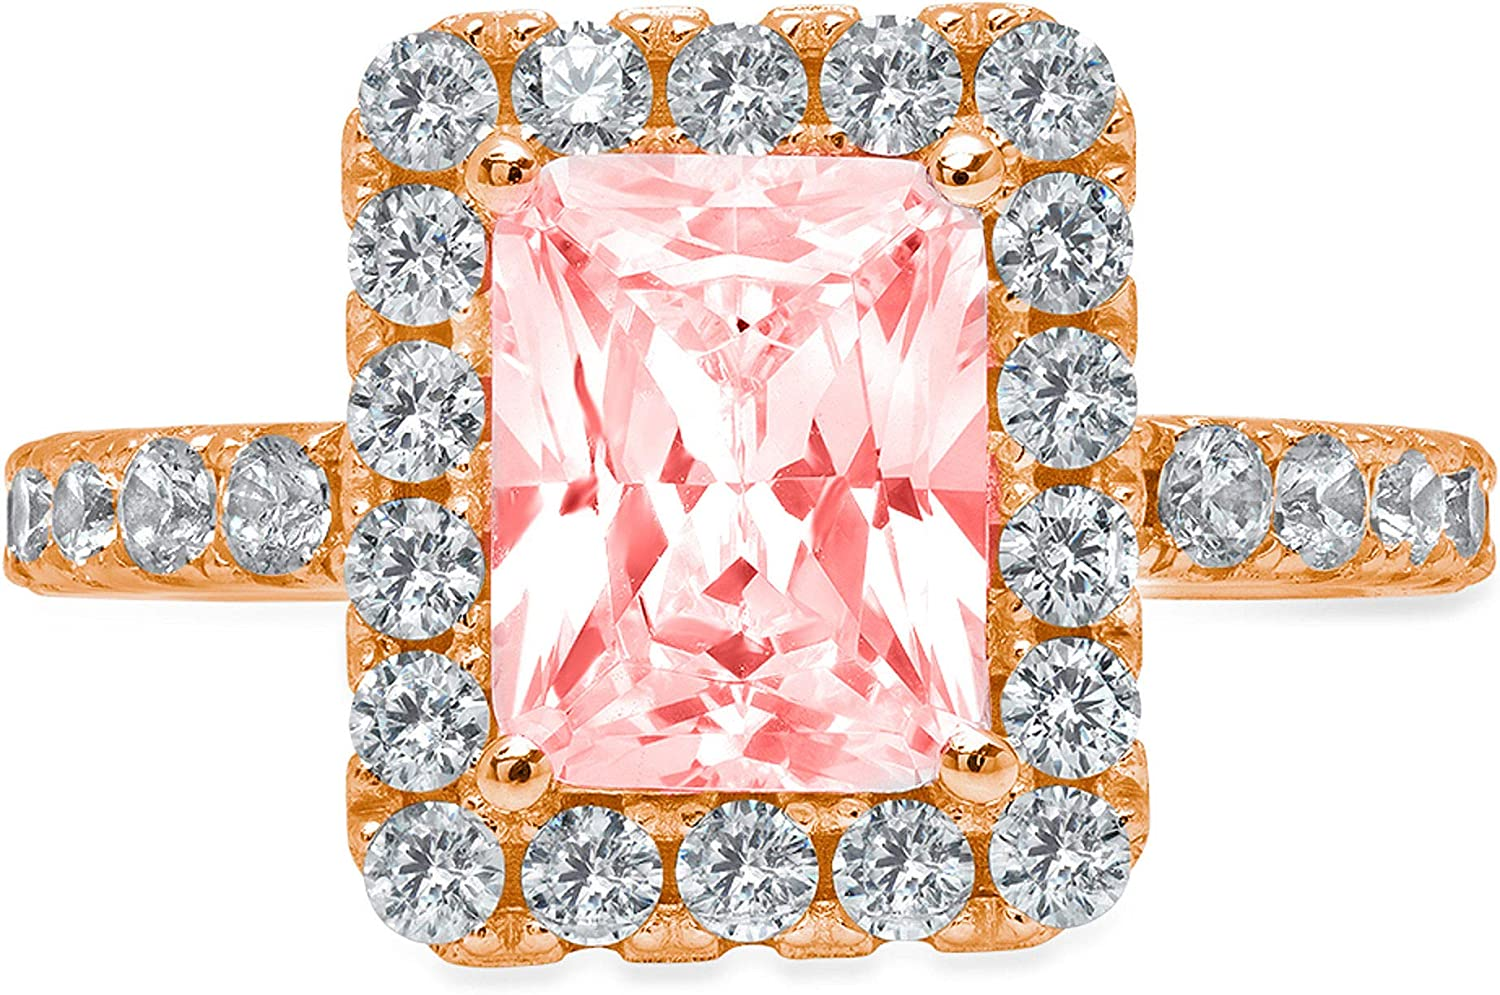 3.84ct Brilliant Emerald Cut Solitaire with Accent Halo Pink Ideal VVS1 Simulated Diamond CZ Engagement Promise Statement Anniversary Bridal Wedding Ring 14k Rose Gold